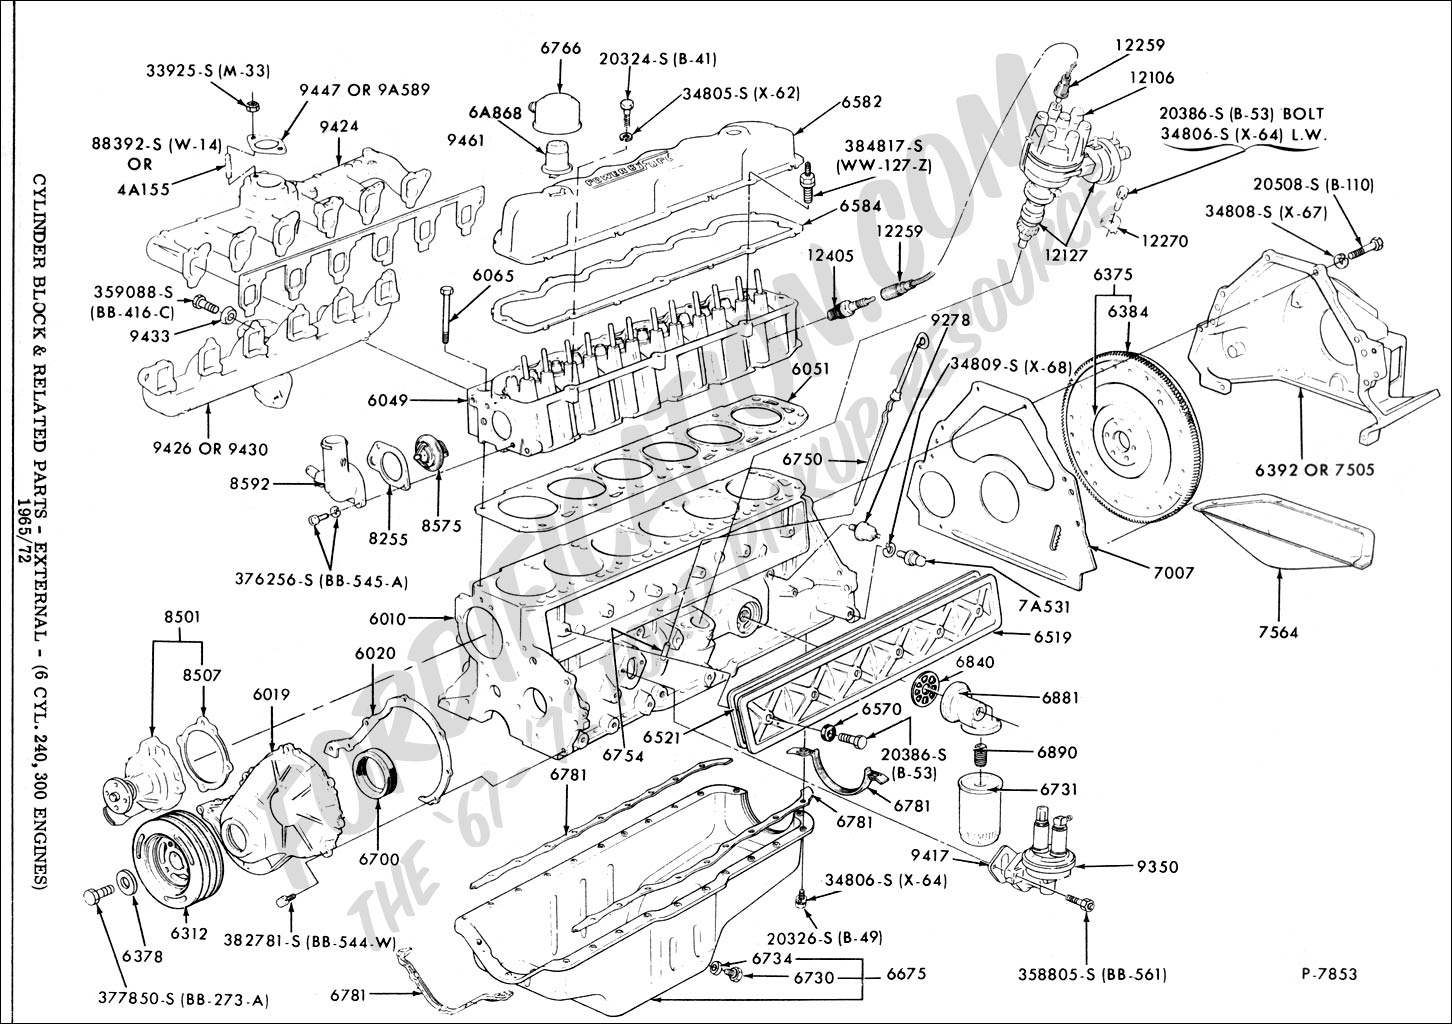 1098391 Oil Pump Location And Replacement on Ford Bronco 5 0 Engine Diagram